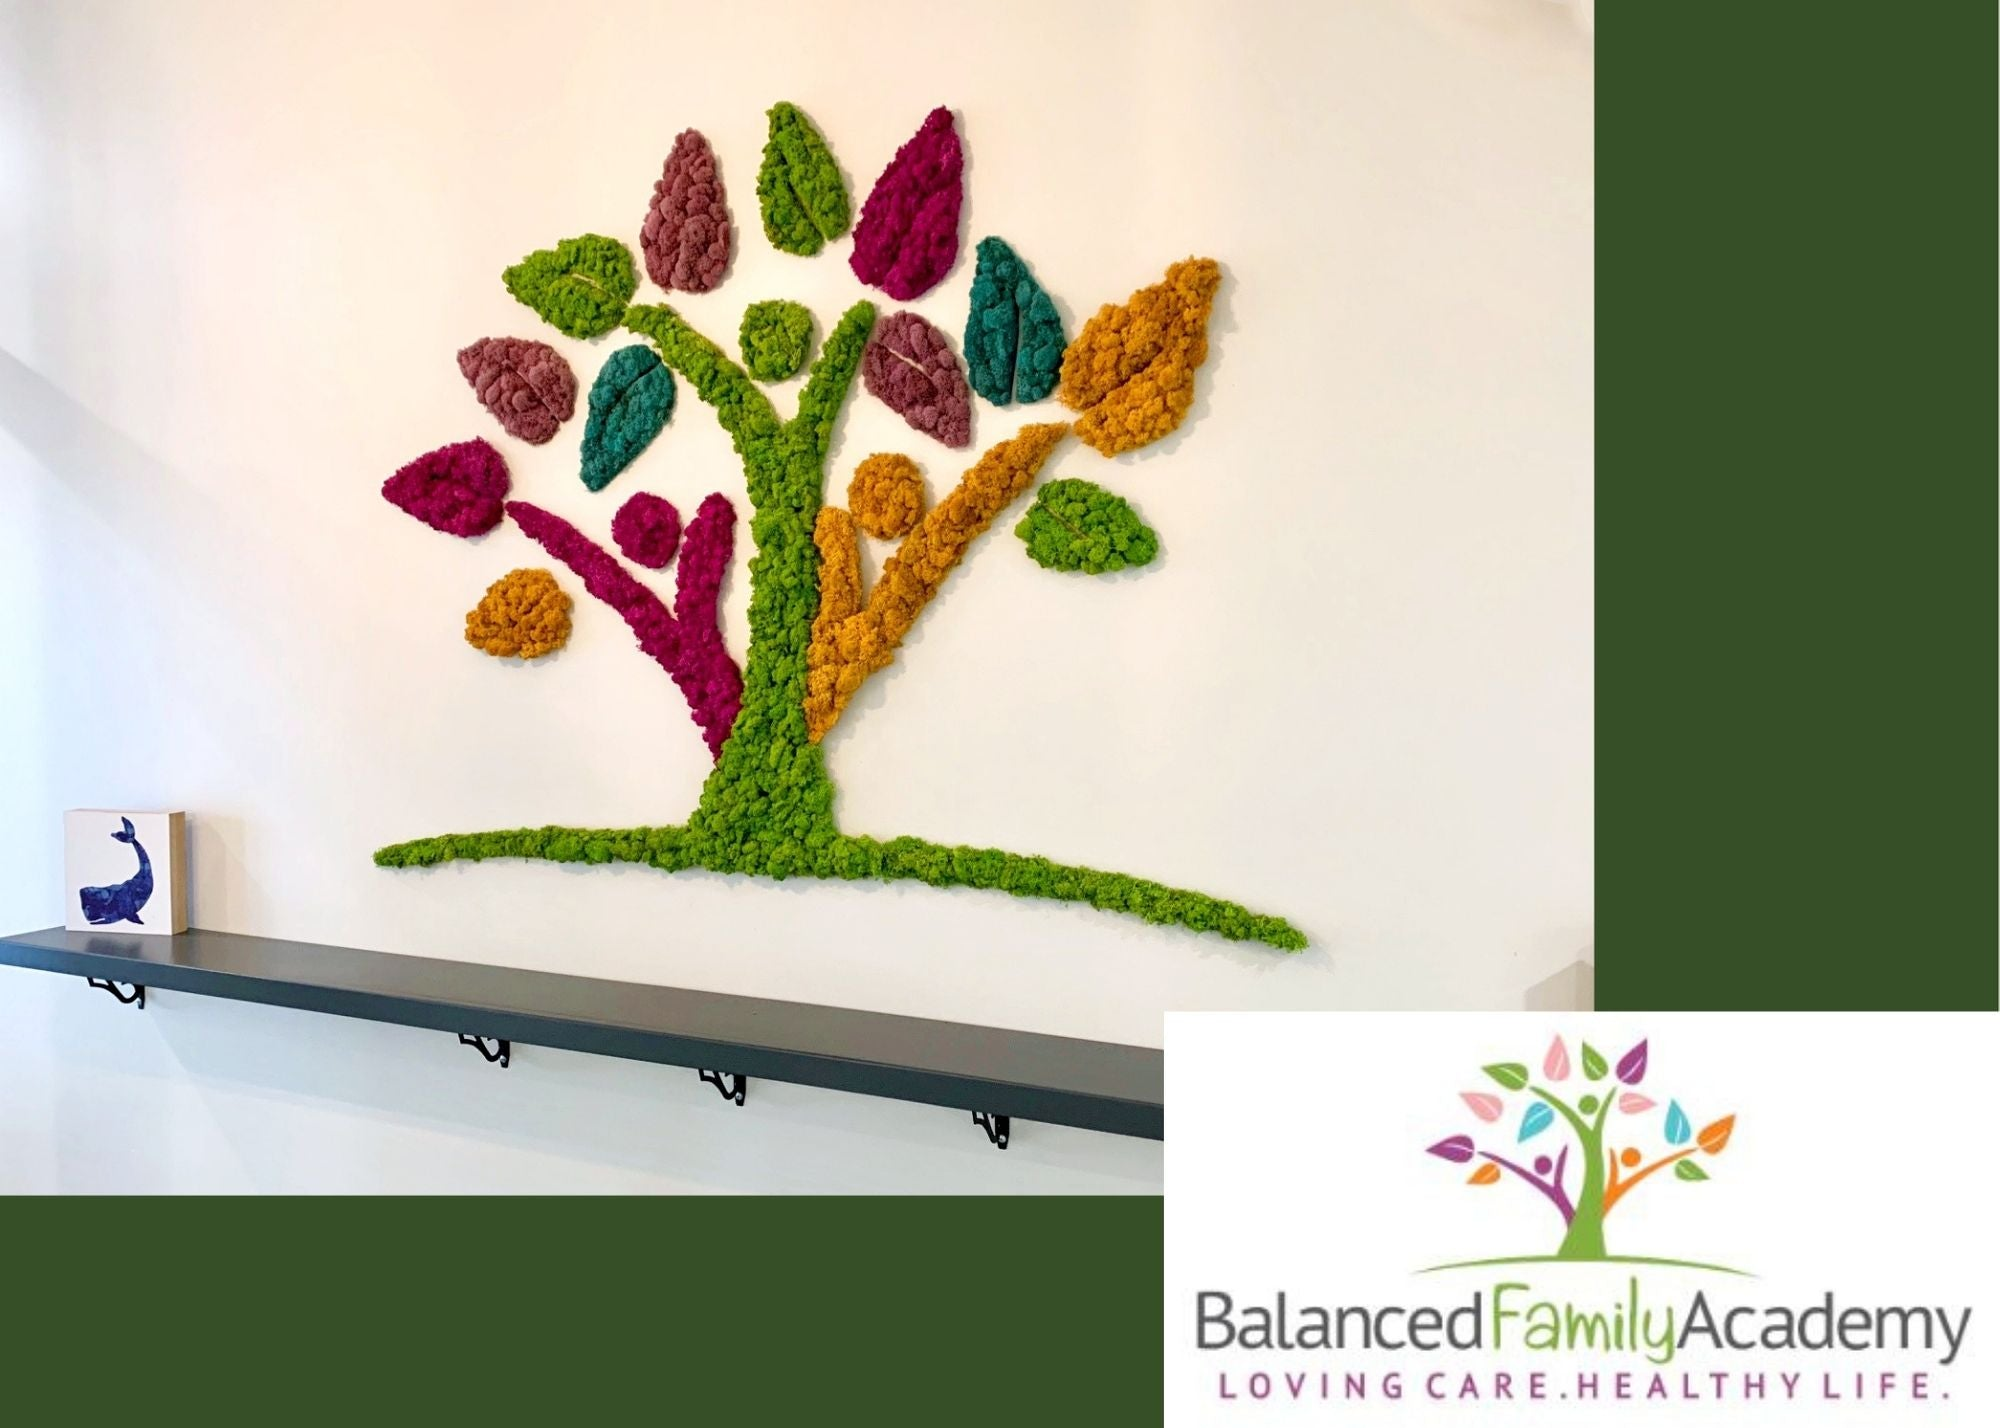 Custom moss wall recreating a daycare logo of a colorful tree using multiple colored moss. Moss art by Oakland Green Interiors.